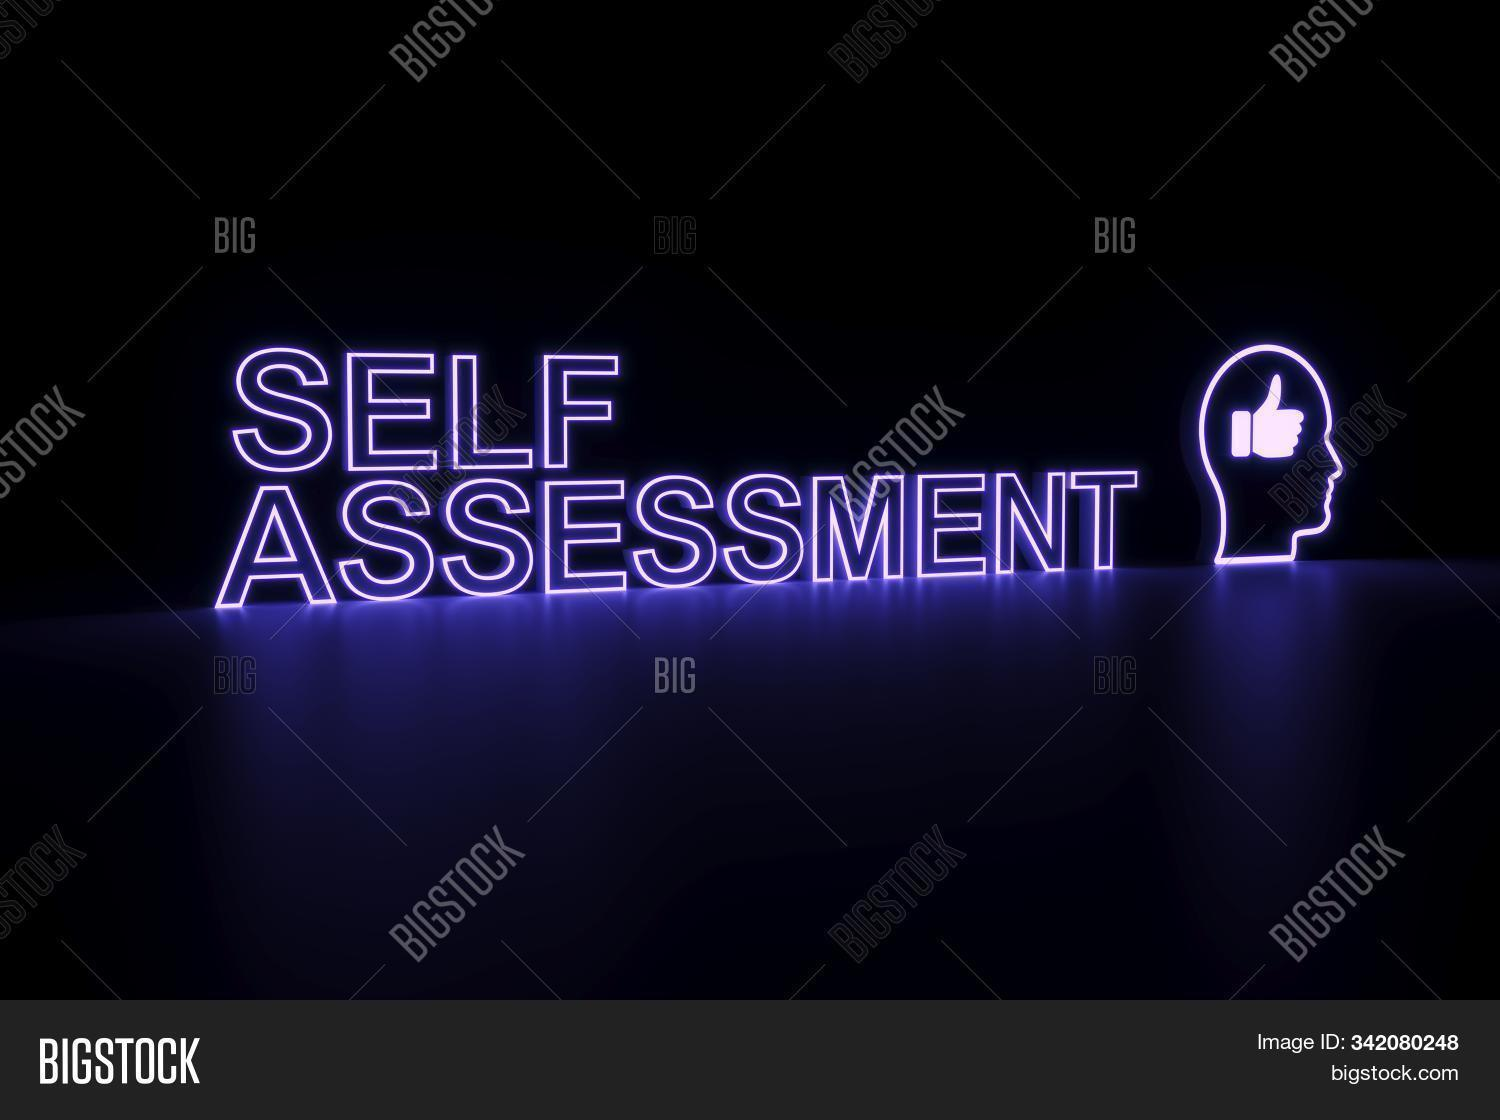 Self Assessment Neon Image Photo Free Trial Bigstock Sometimes it feels crazy overwhelming to keep assessing students and know exactly what they do/don't understand. self assessment neon image photo